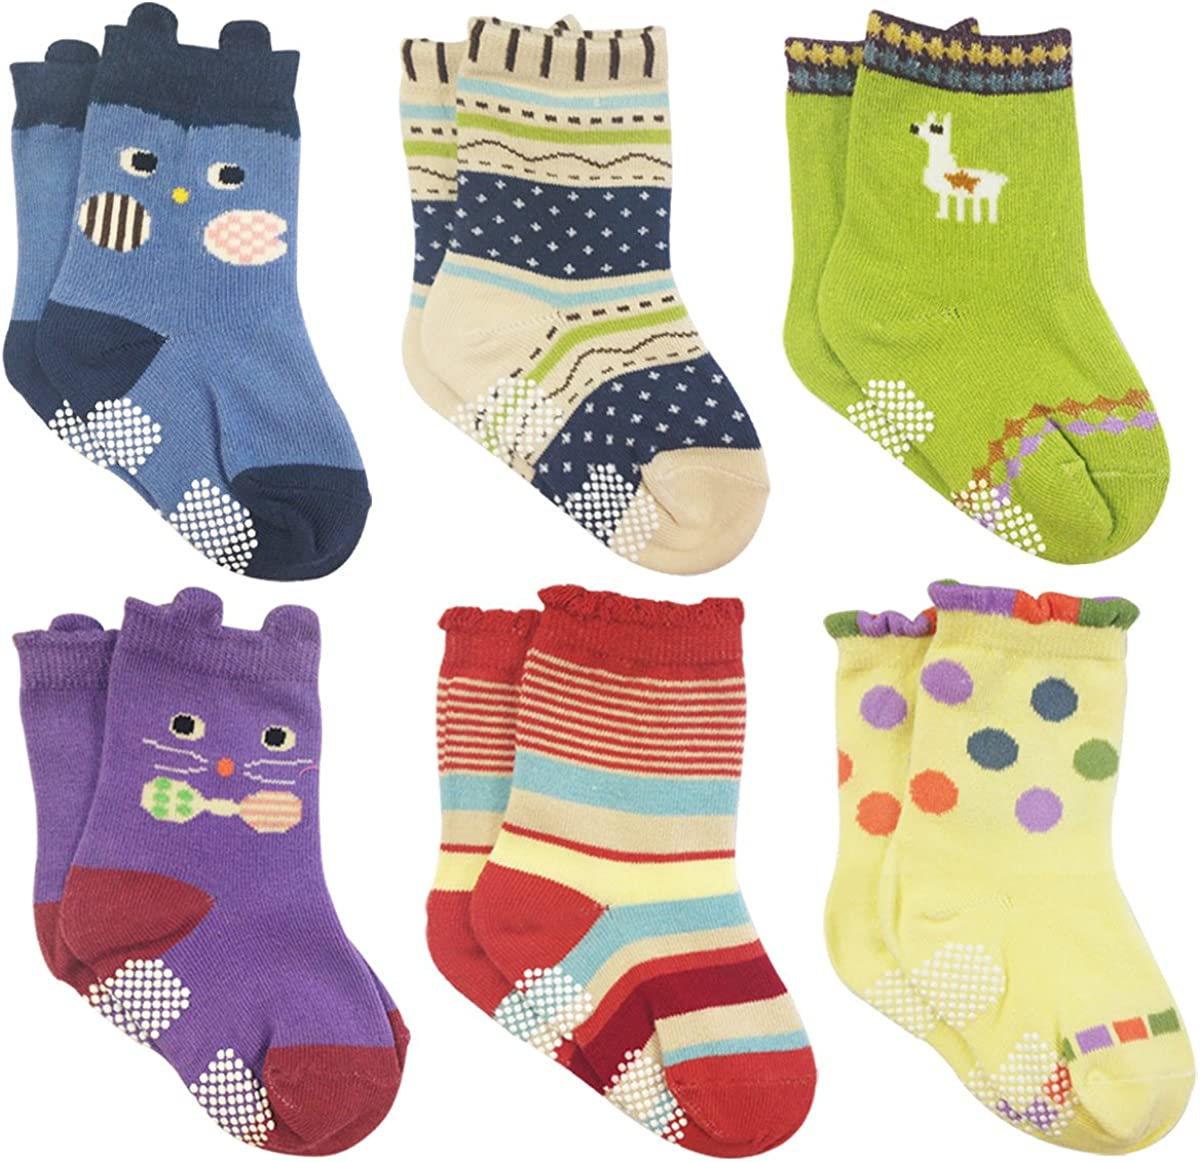 Wrapables Peek A Boo Animal Non-Skid Toddler Socks (Set of 6), L